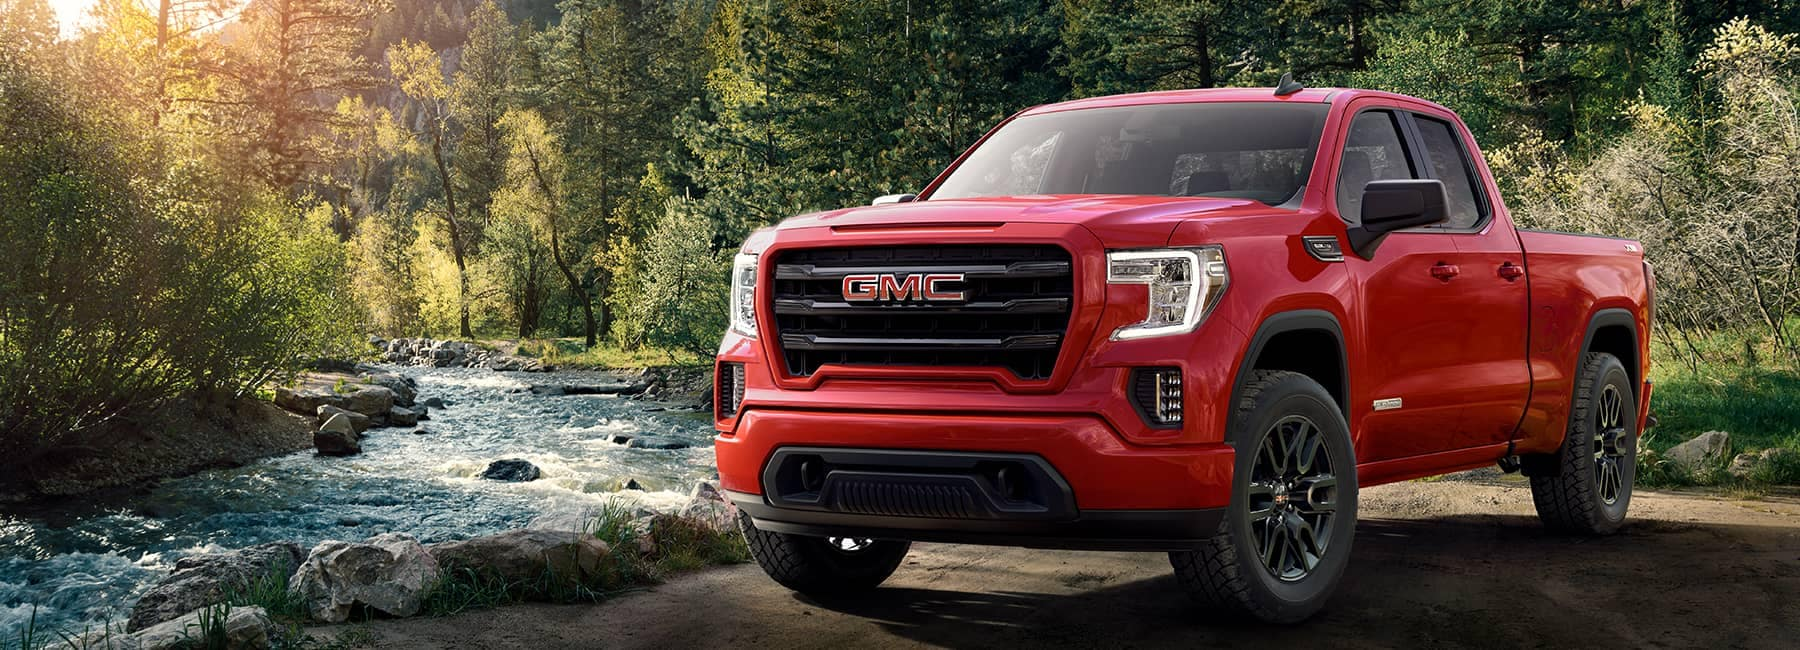 Red 2020 GMC Sierra 1500 by a River